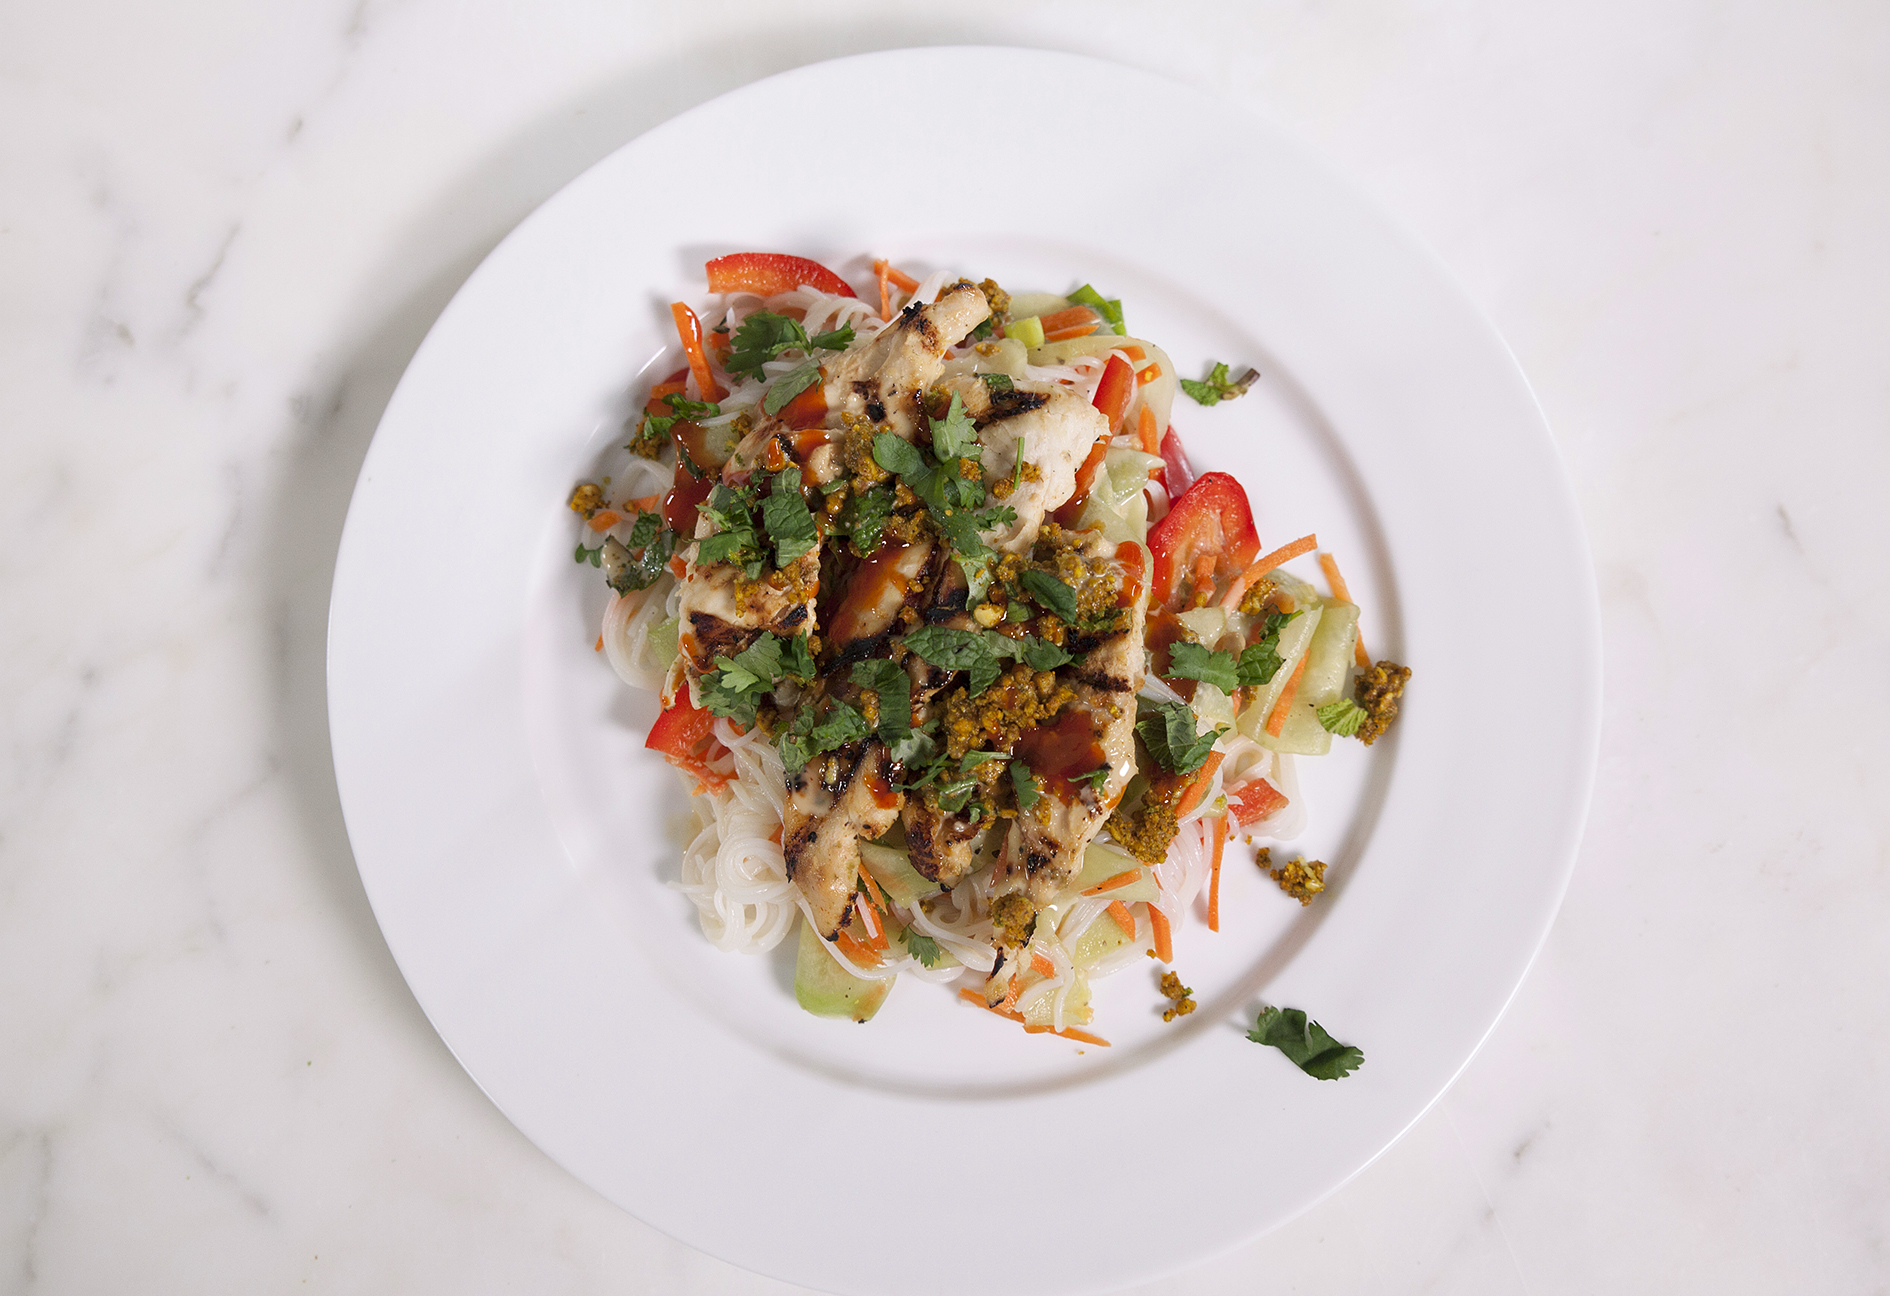 Green Chef's Spring Roll Chicken Salad.